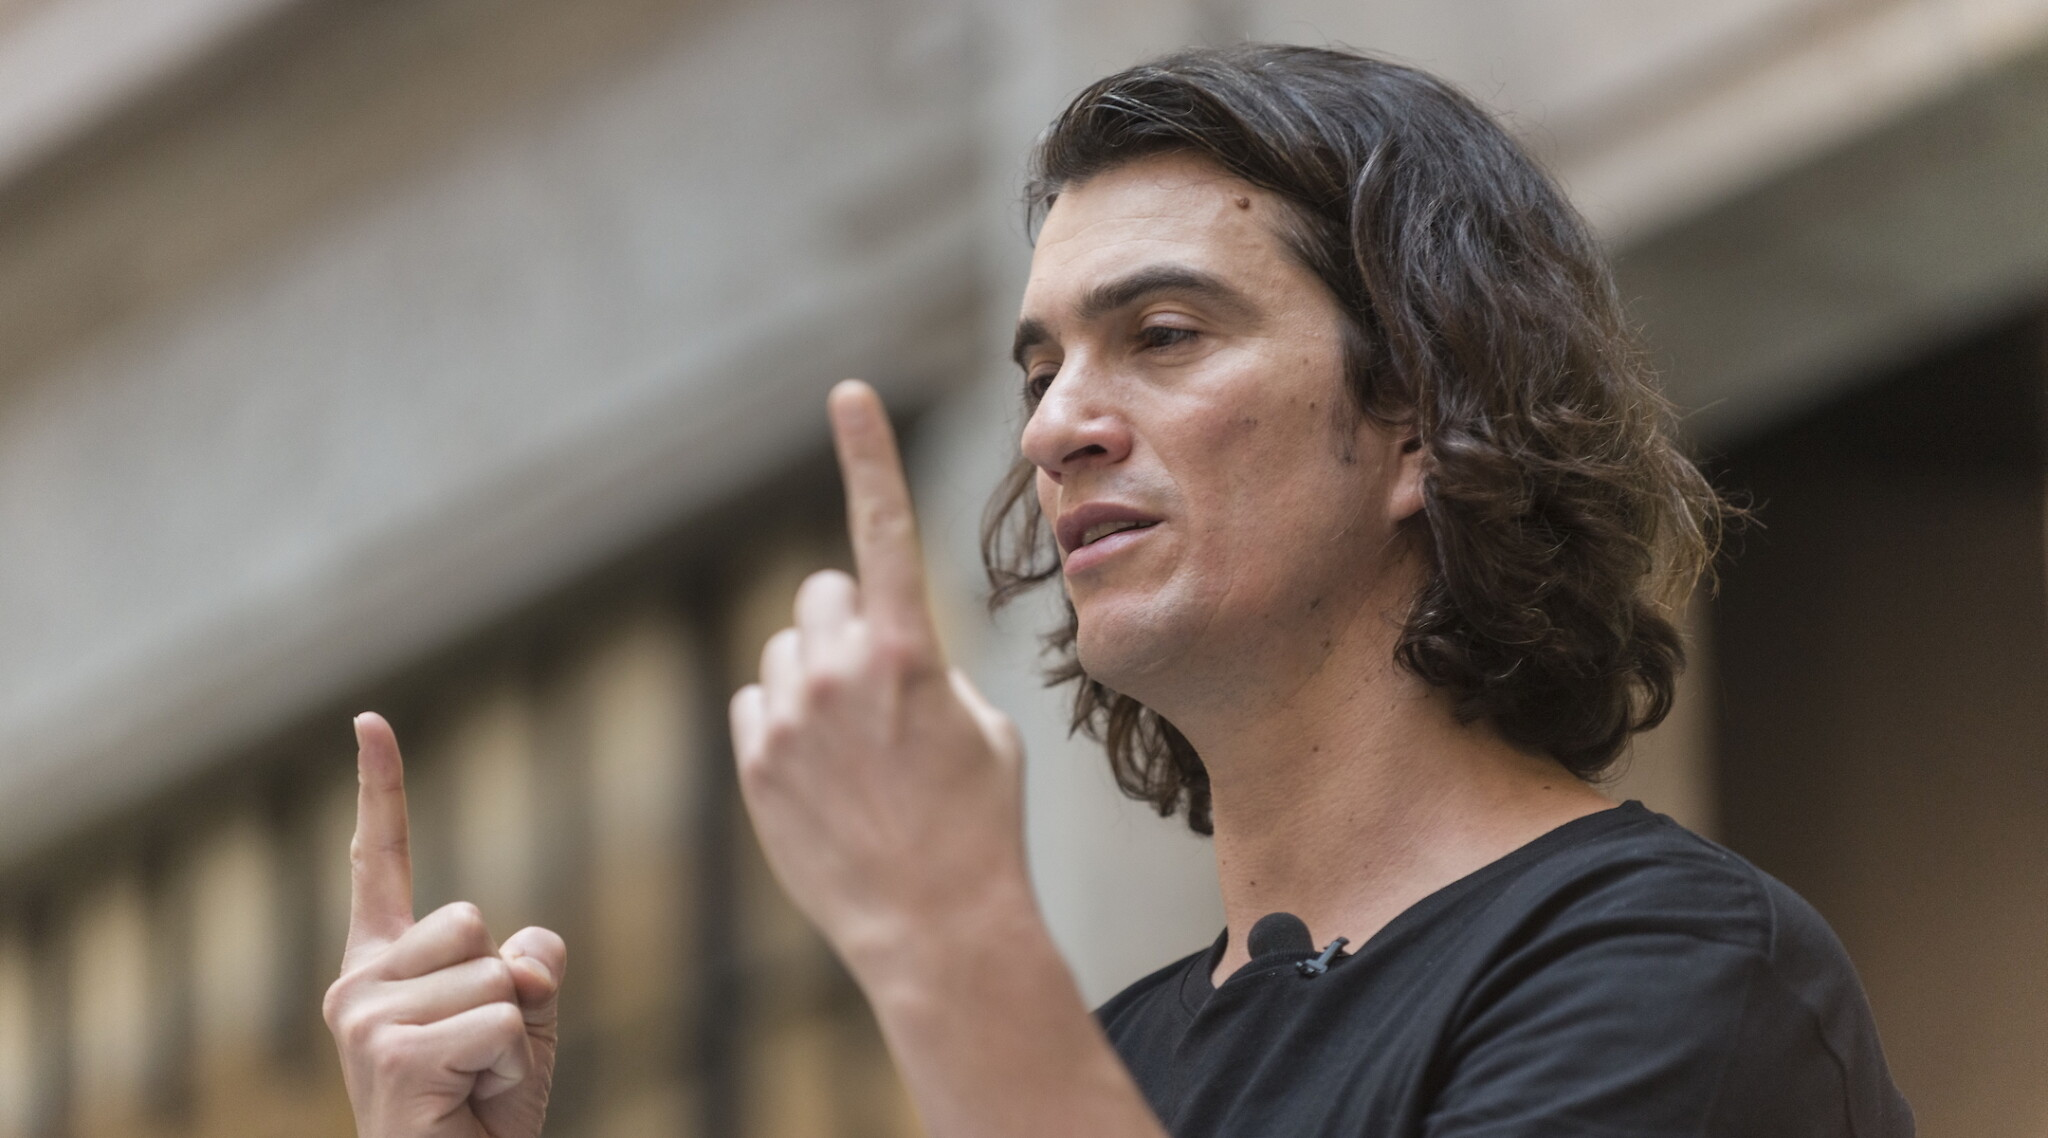 WeWork founder has joined Chabad movement, his mother says ...